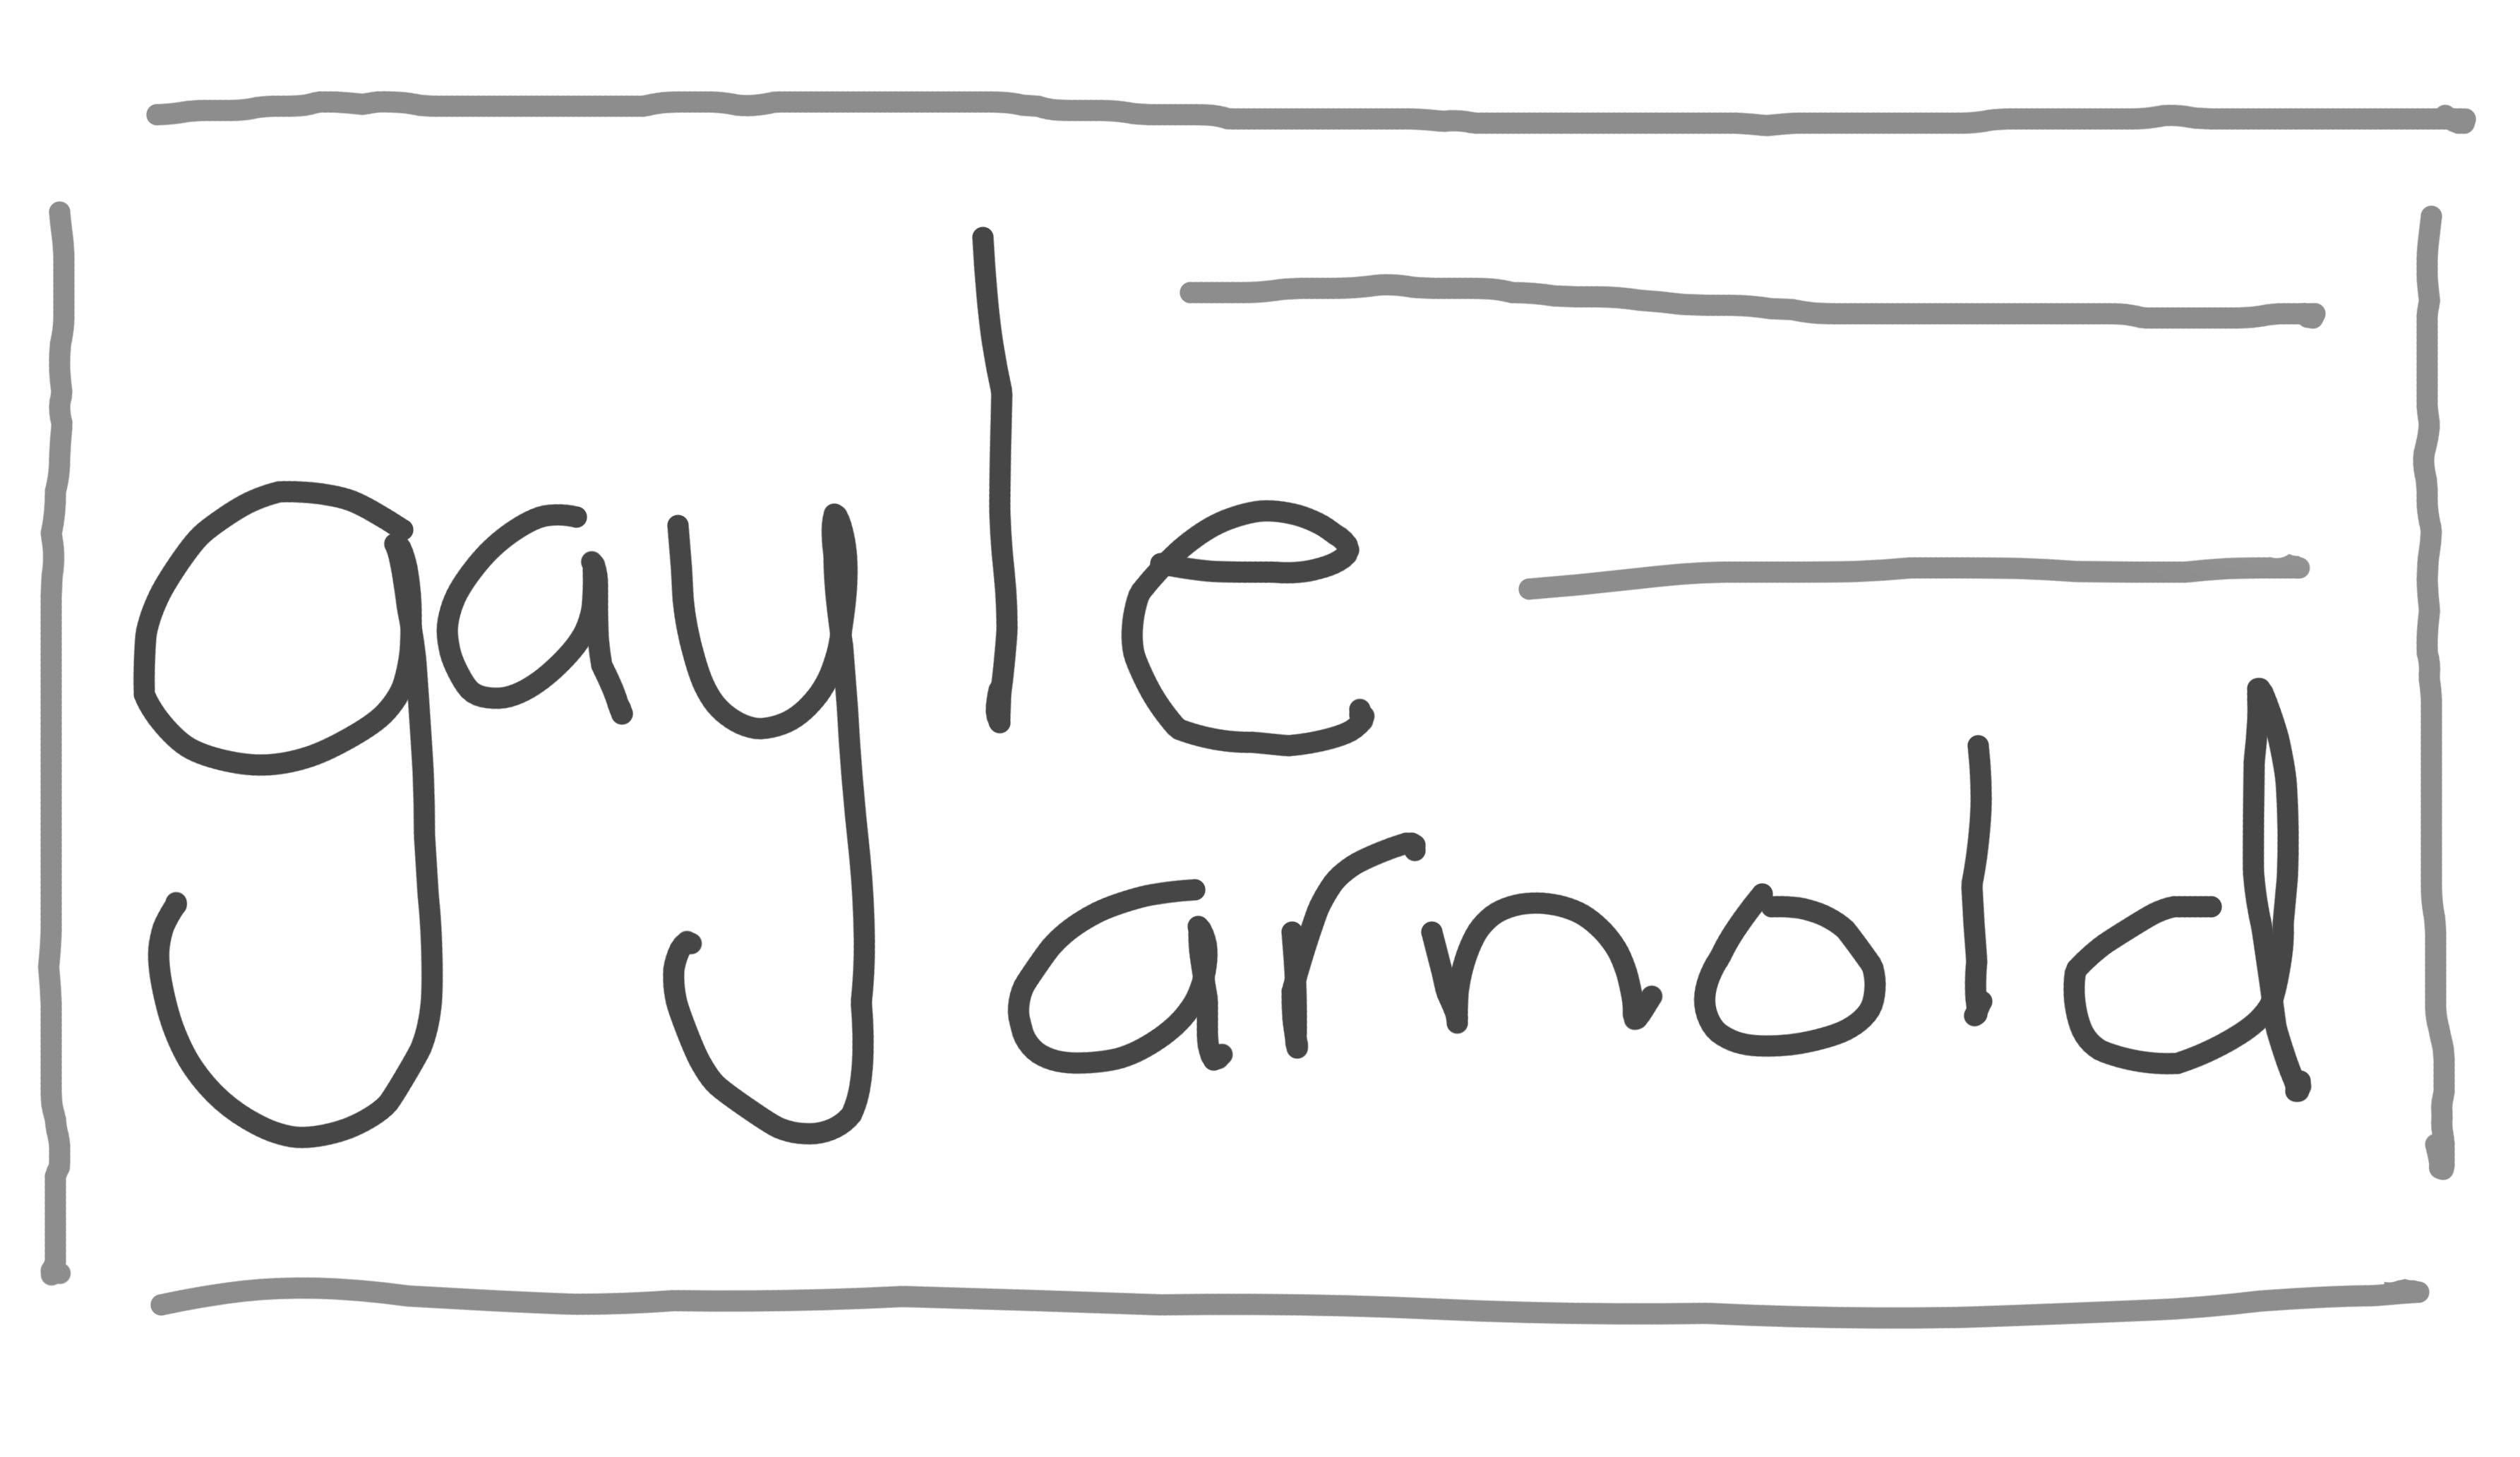 Gayle Arnold's Signature